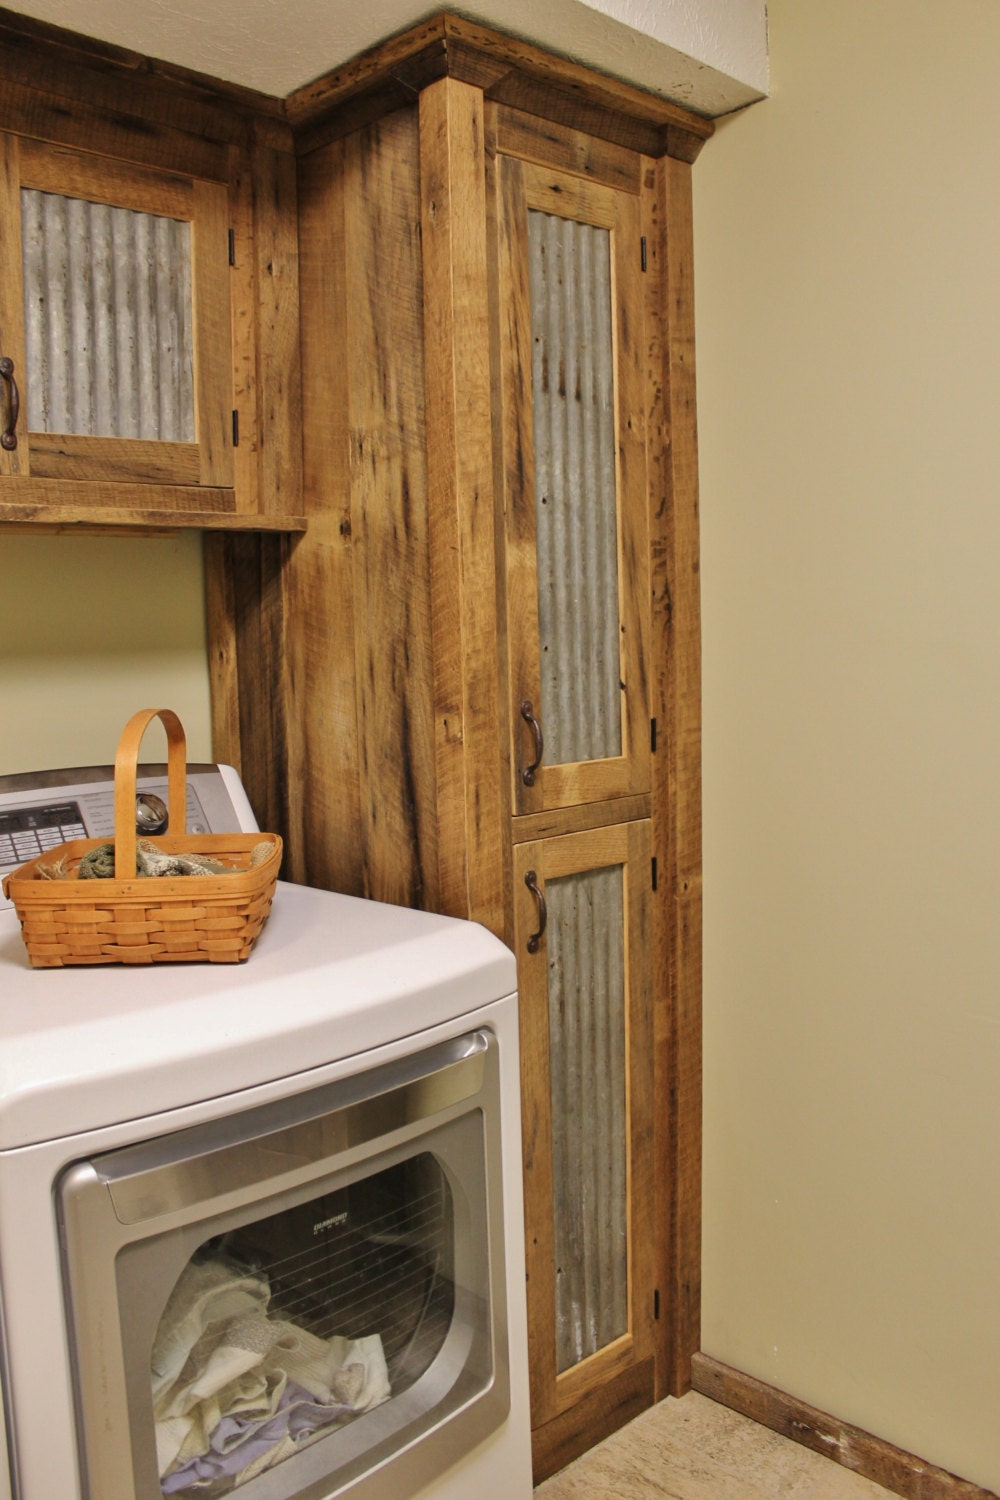 Rustic tall storage reclaimed barn wood cabinet w tin doors for Building rustic kitchen cabinets